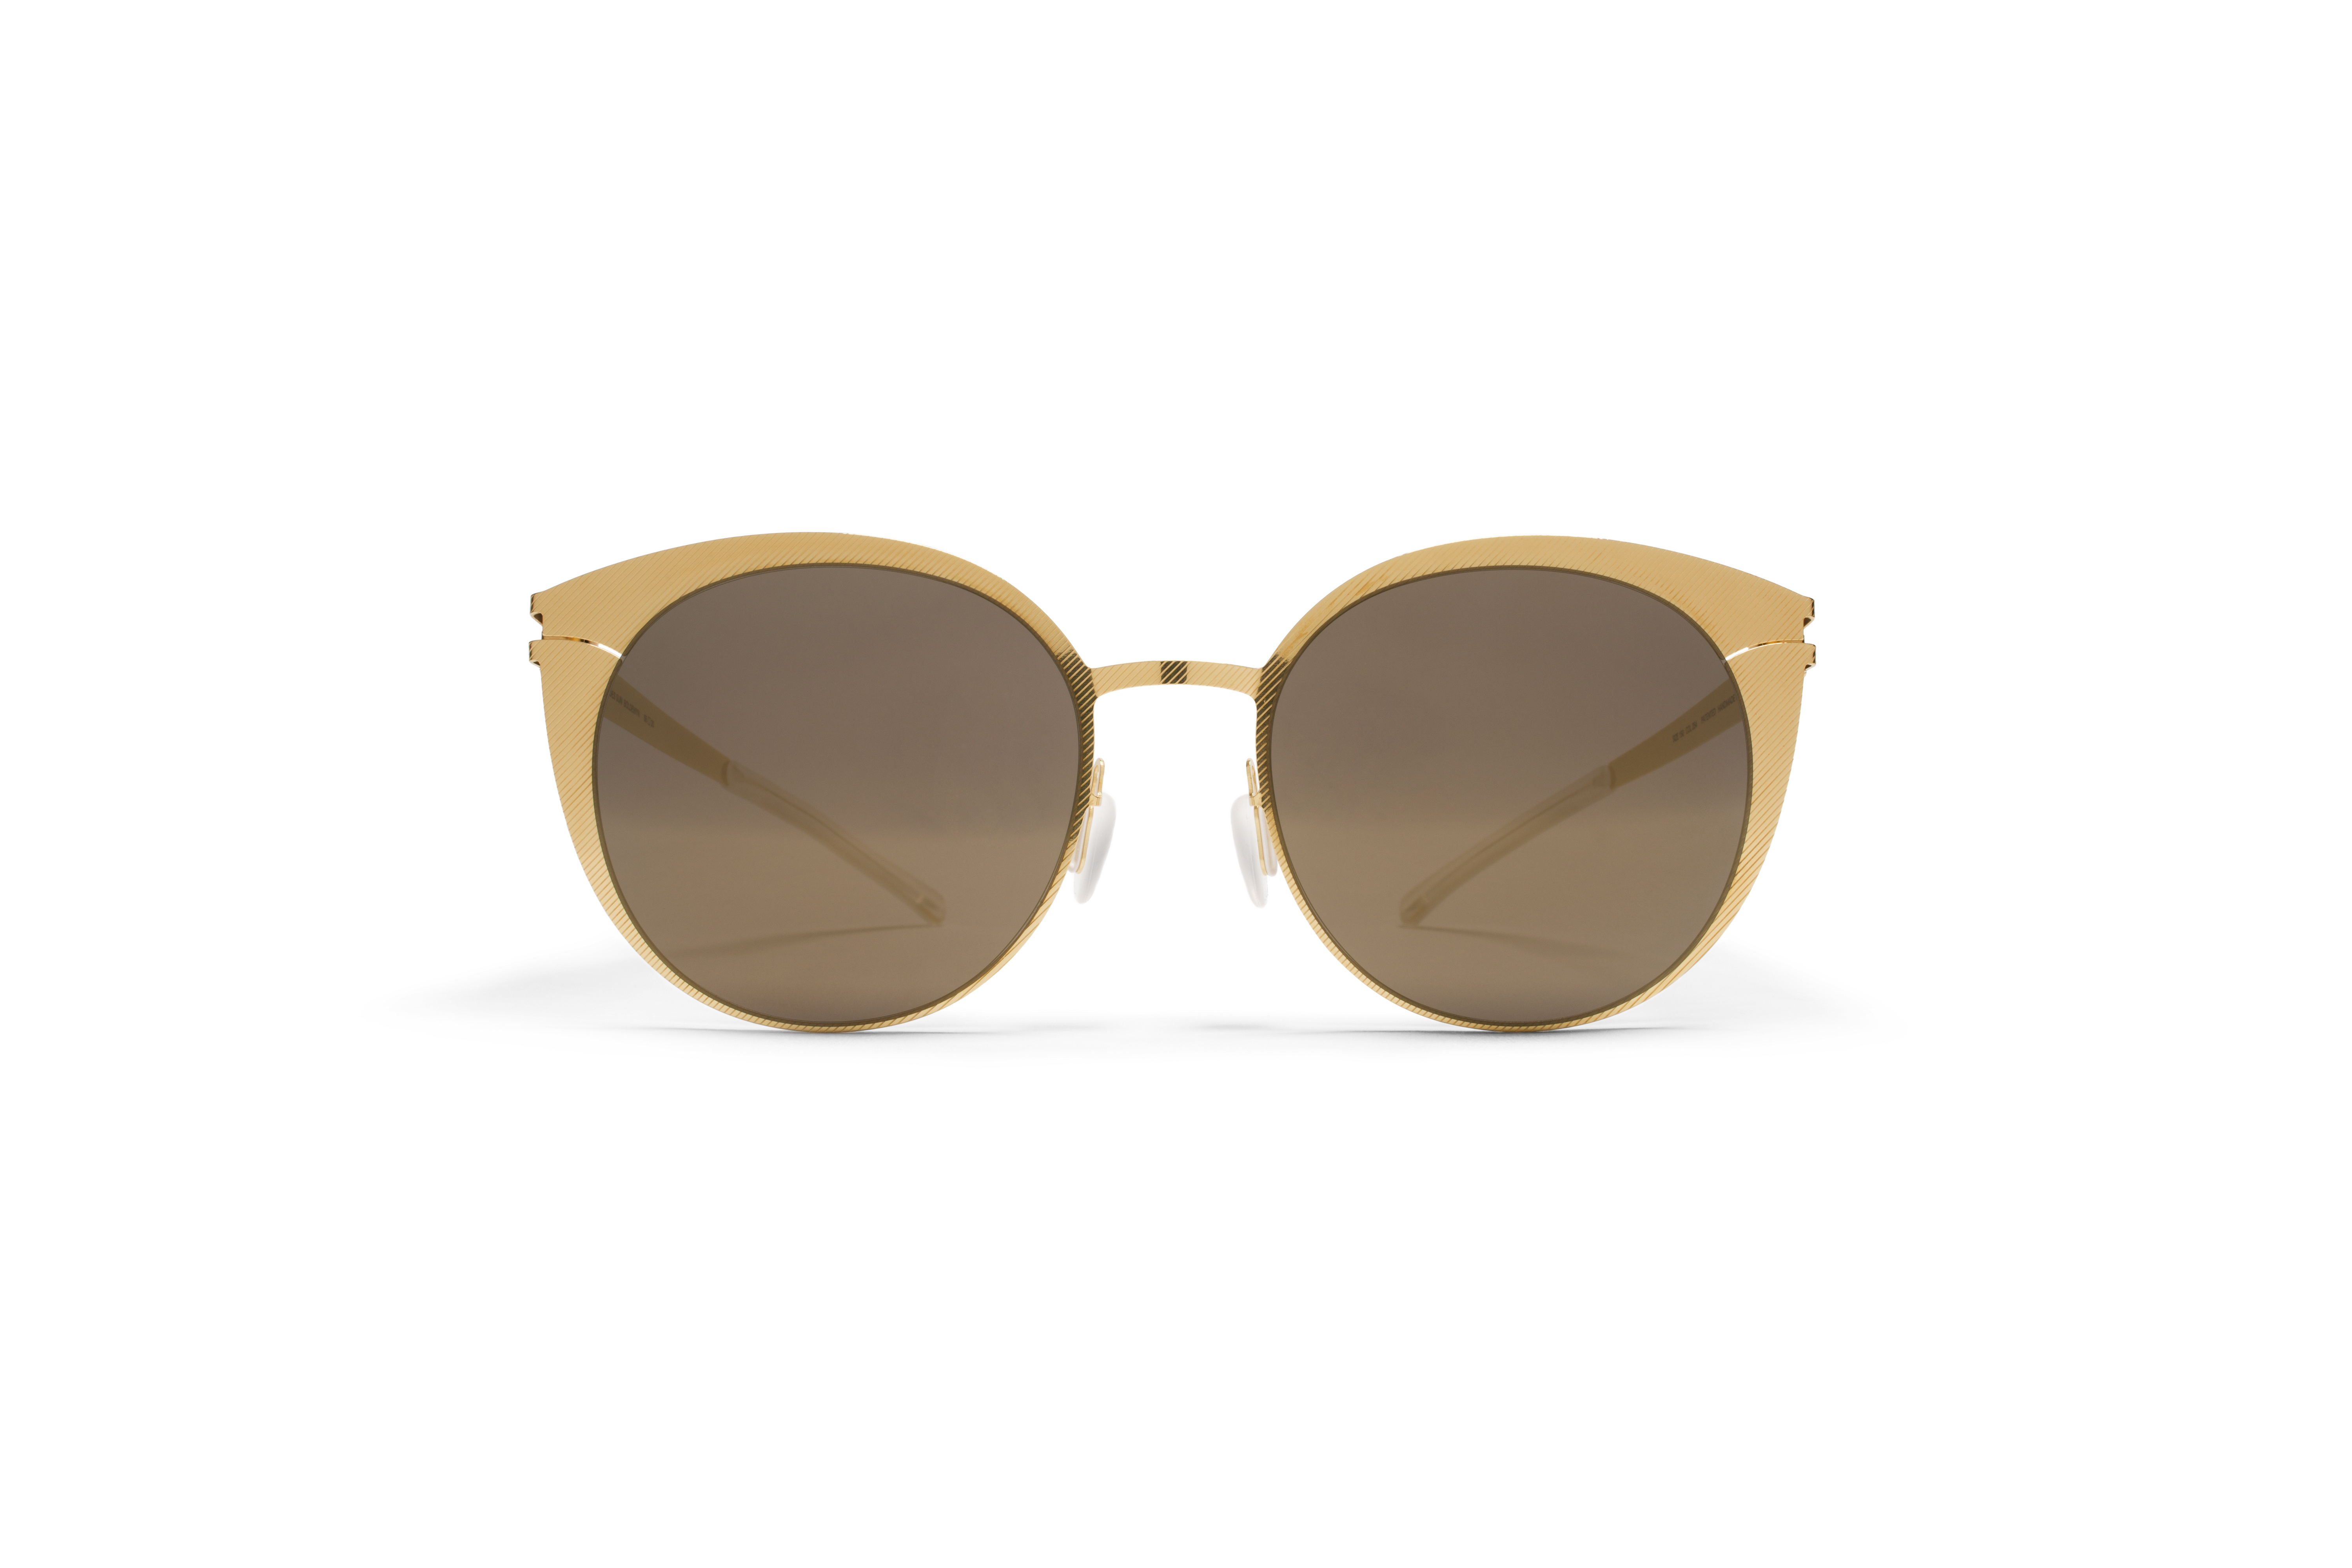 MYKITA Decades Sun Boldewyn Gold Hatch Brilliantgr56eaab246c506